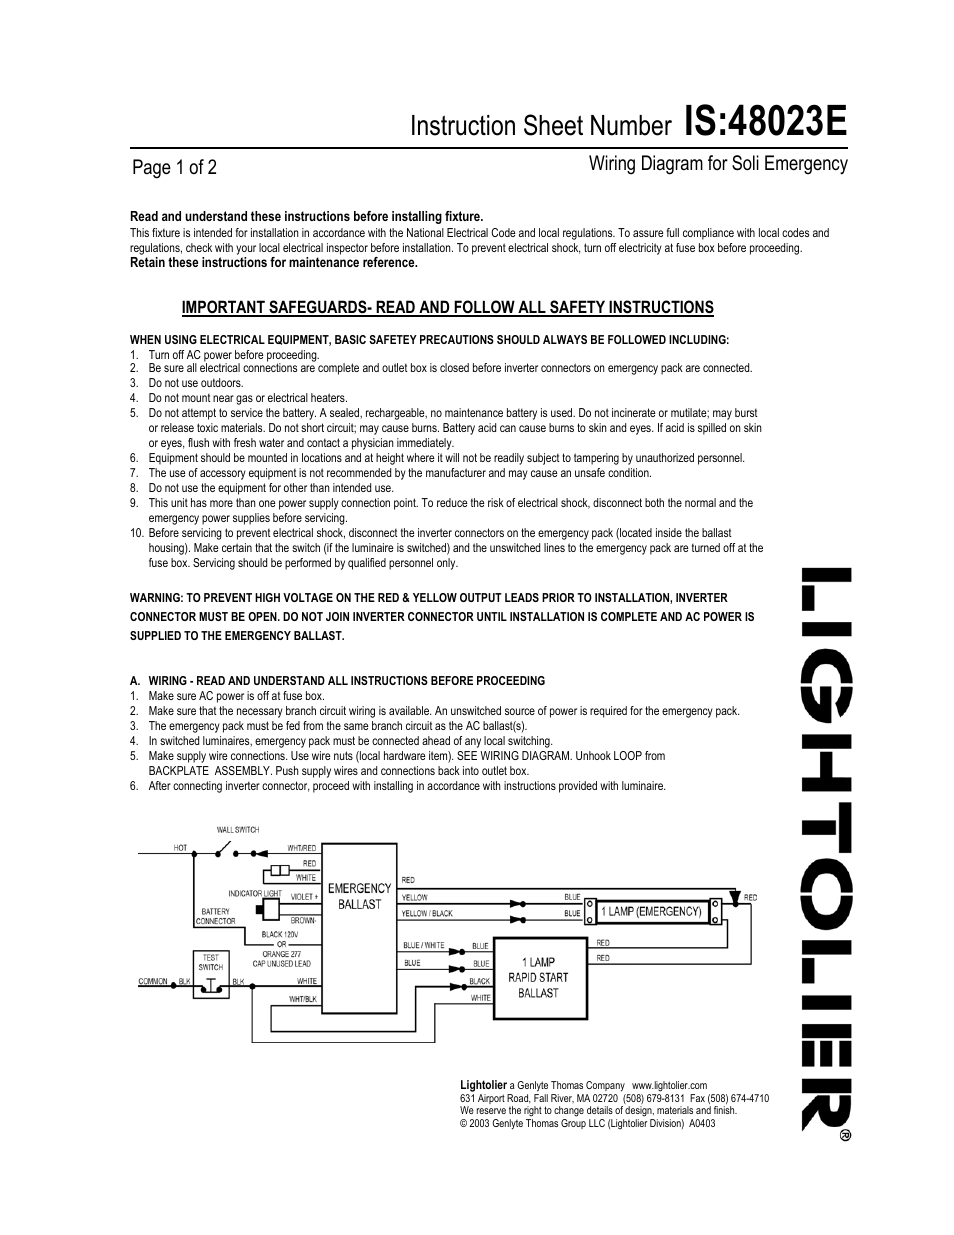 wiring diagram for emergency ballast the wiring diagram emergency ballast wiring diagram vidim wiring diagram wiring diagram